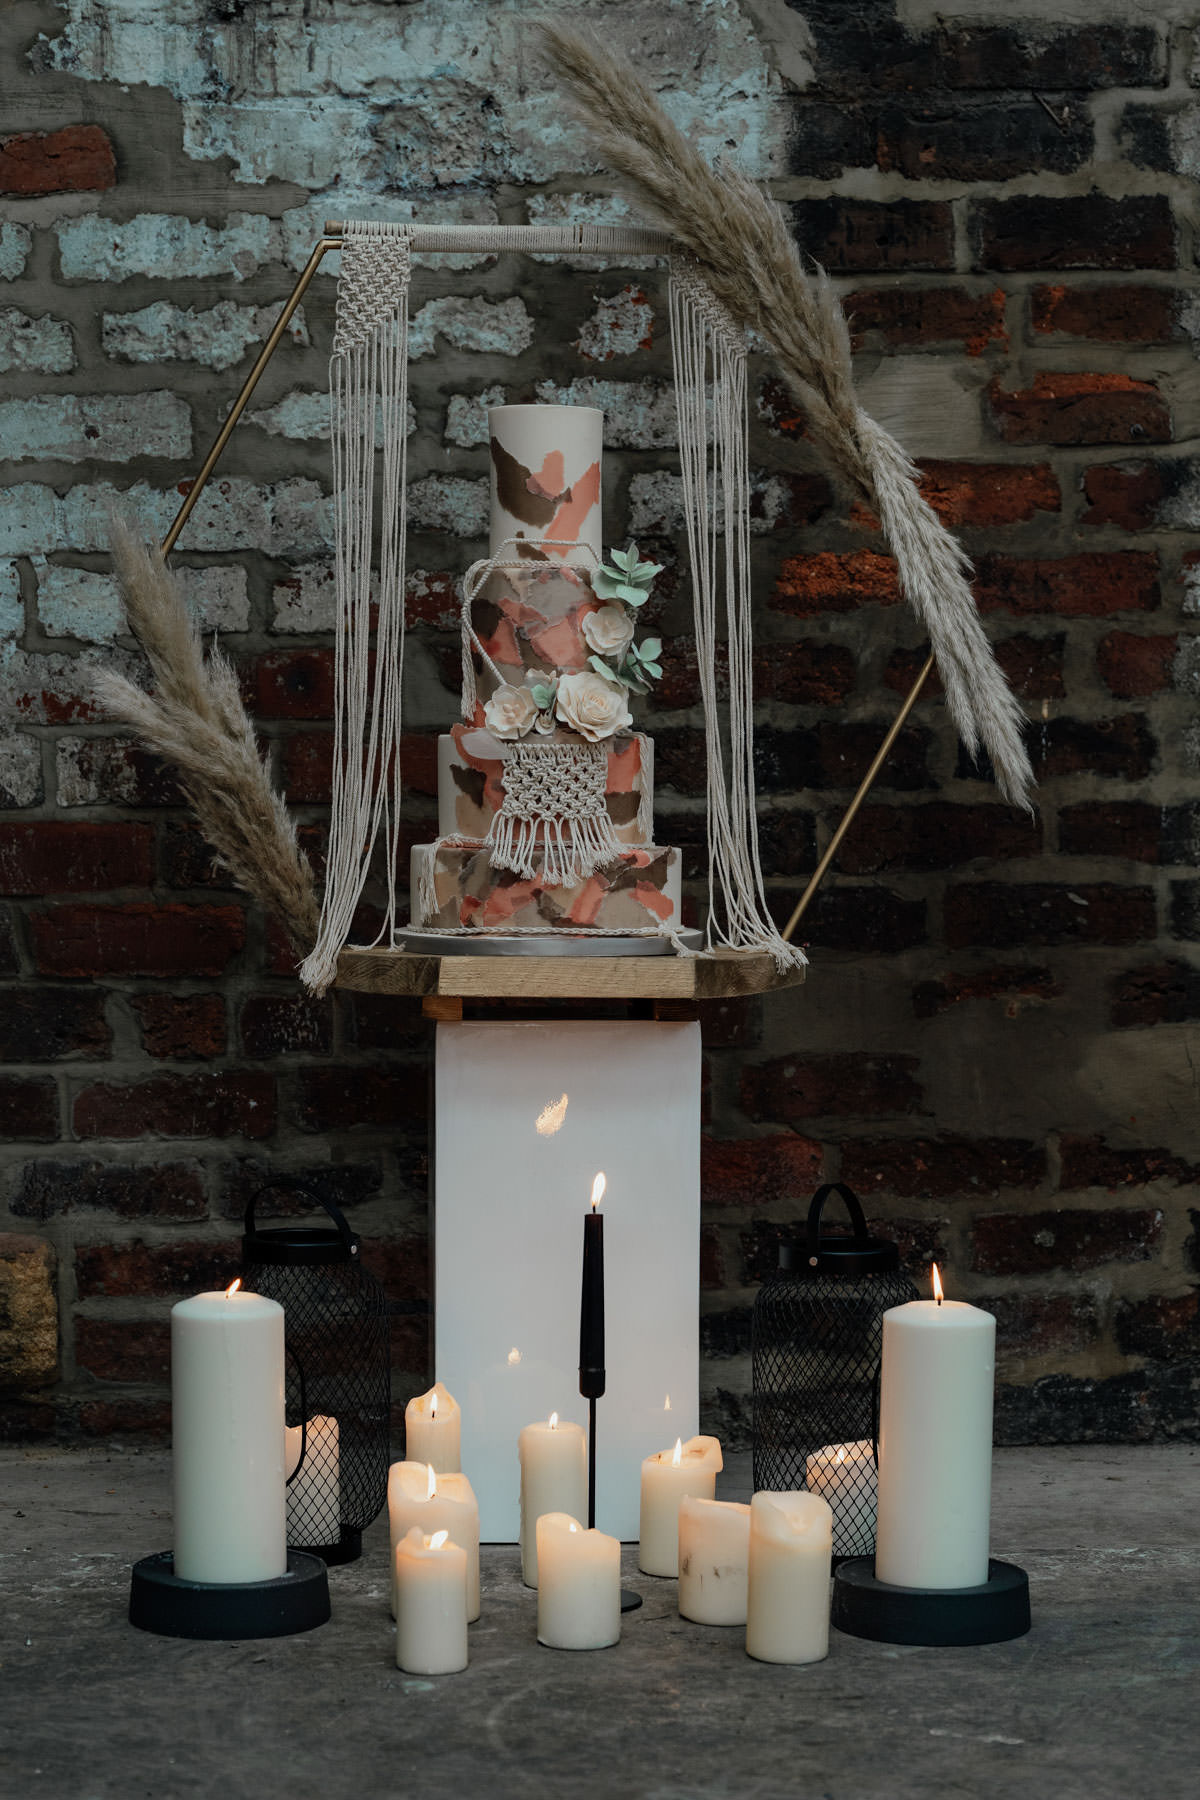 Industrial Meets Boho Wedding Inspiration: Hexagon tiered cake with Macrame, pampas grass and roses